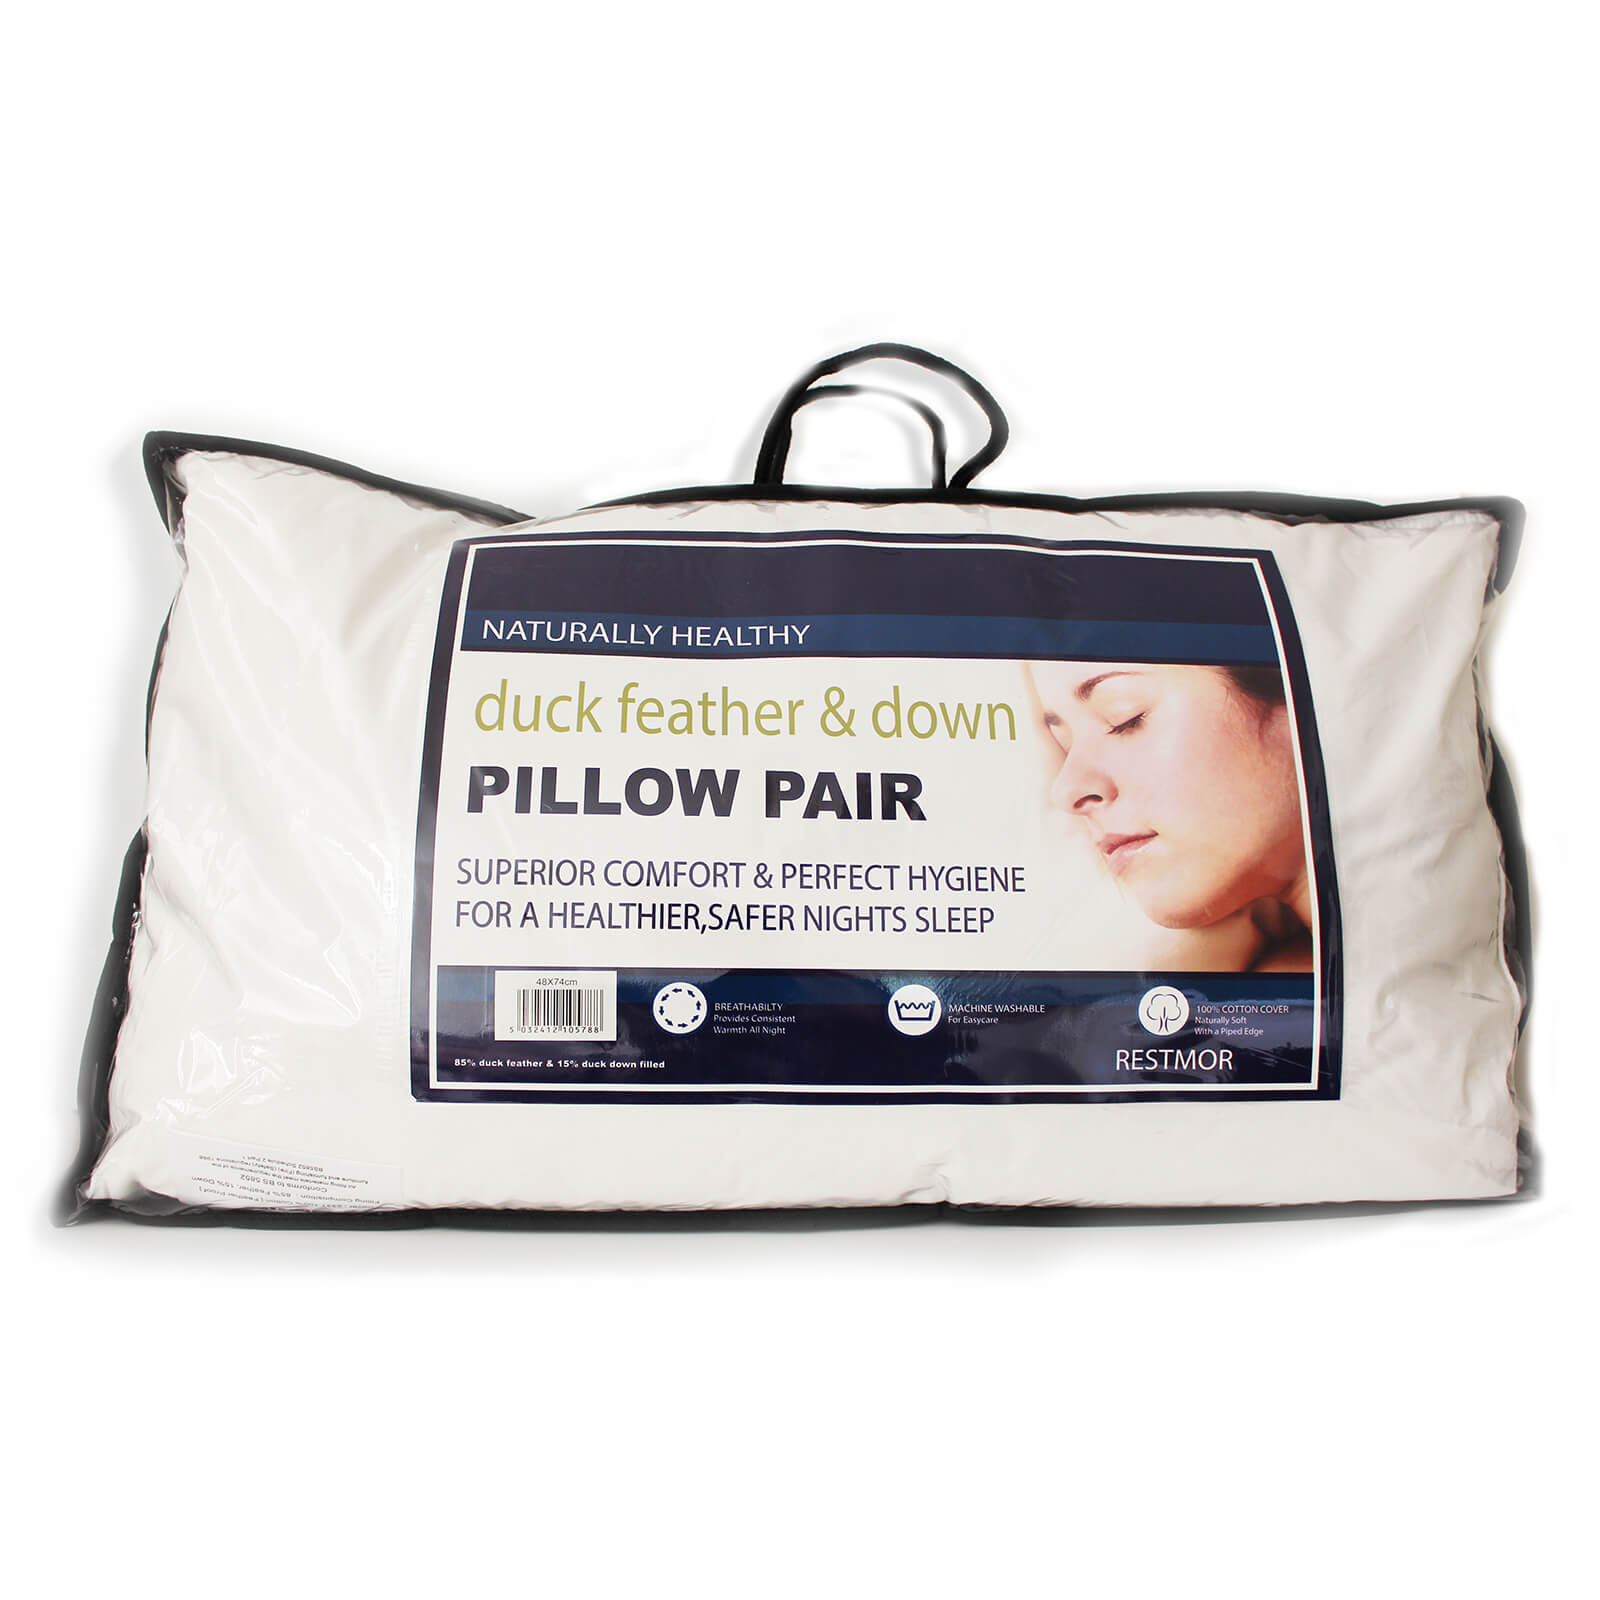 Restmor Duck Feather and Down Pillow Pair - White (50cm x 75cm)